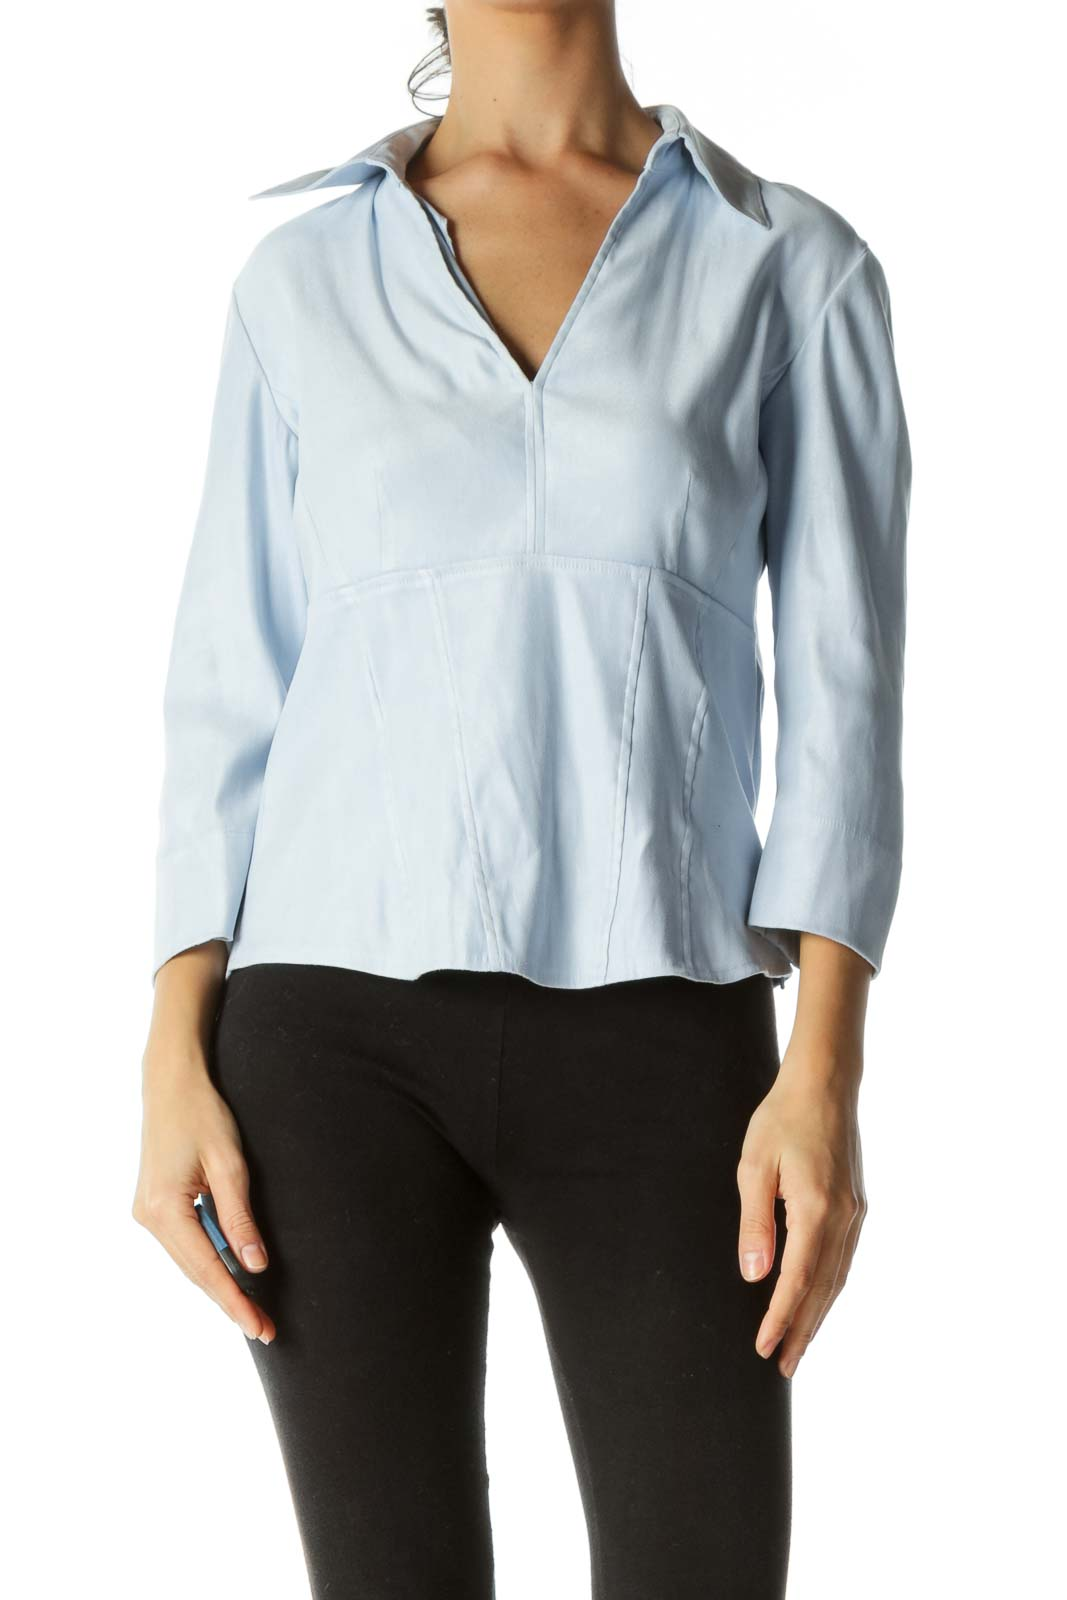 Light Blue V-Neck Faux-Suede Soft-Feel Long Sleeve Top